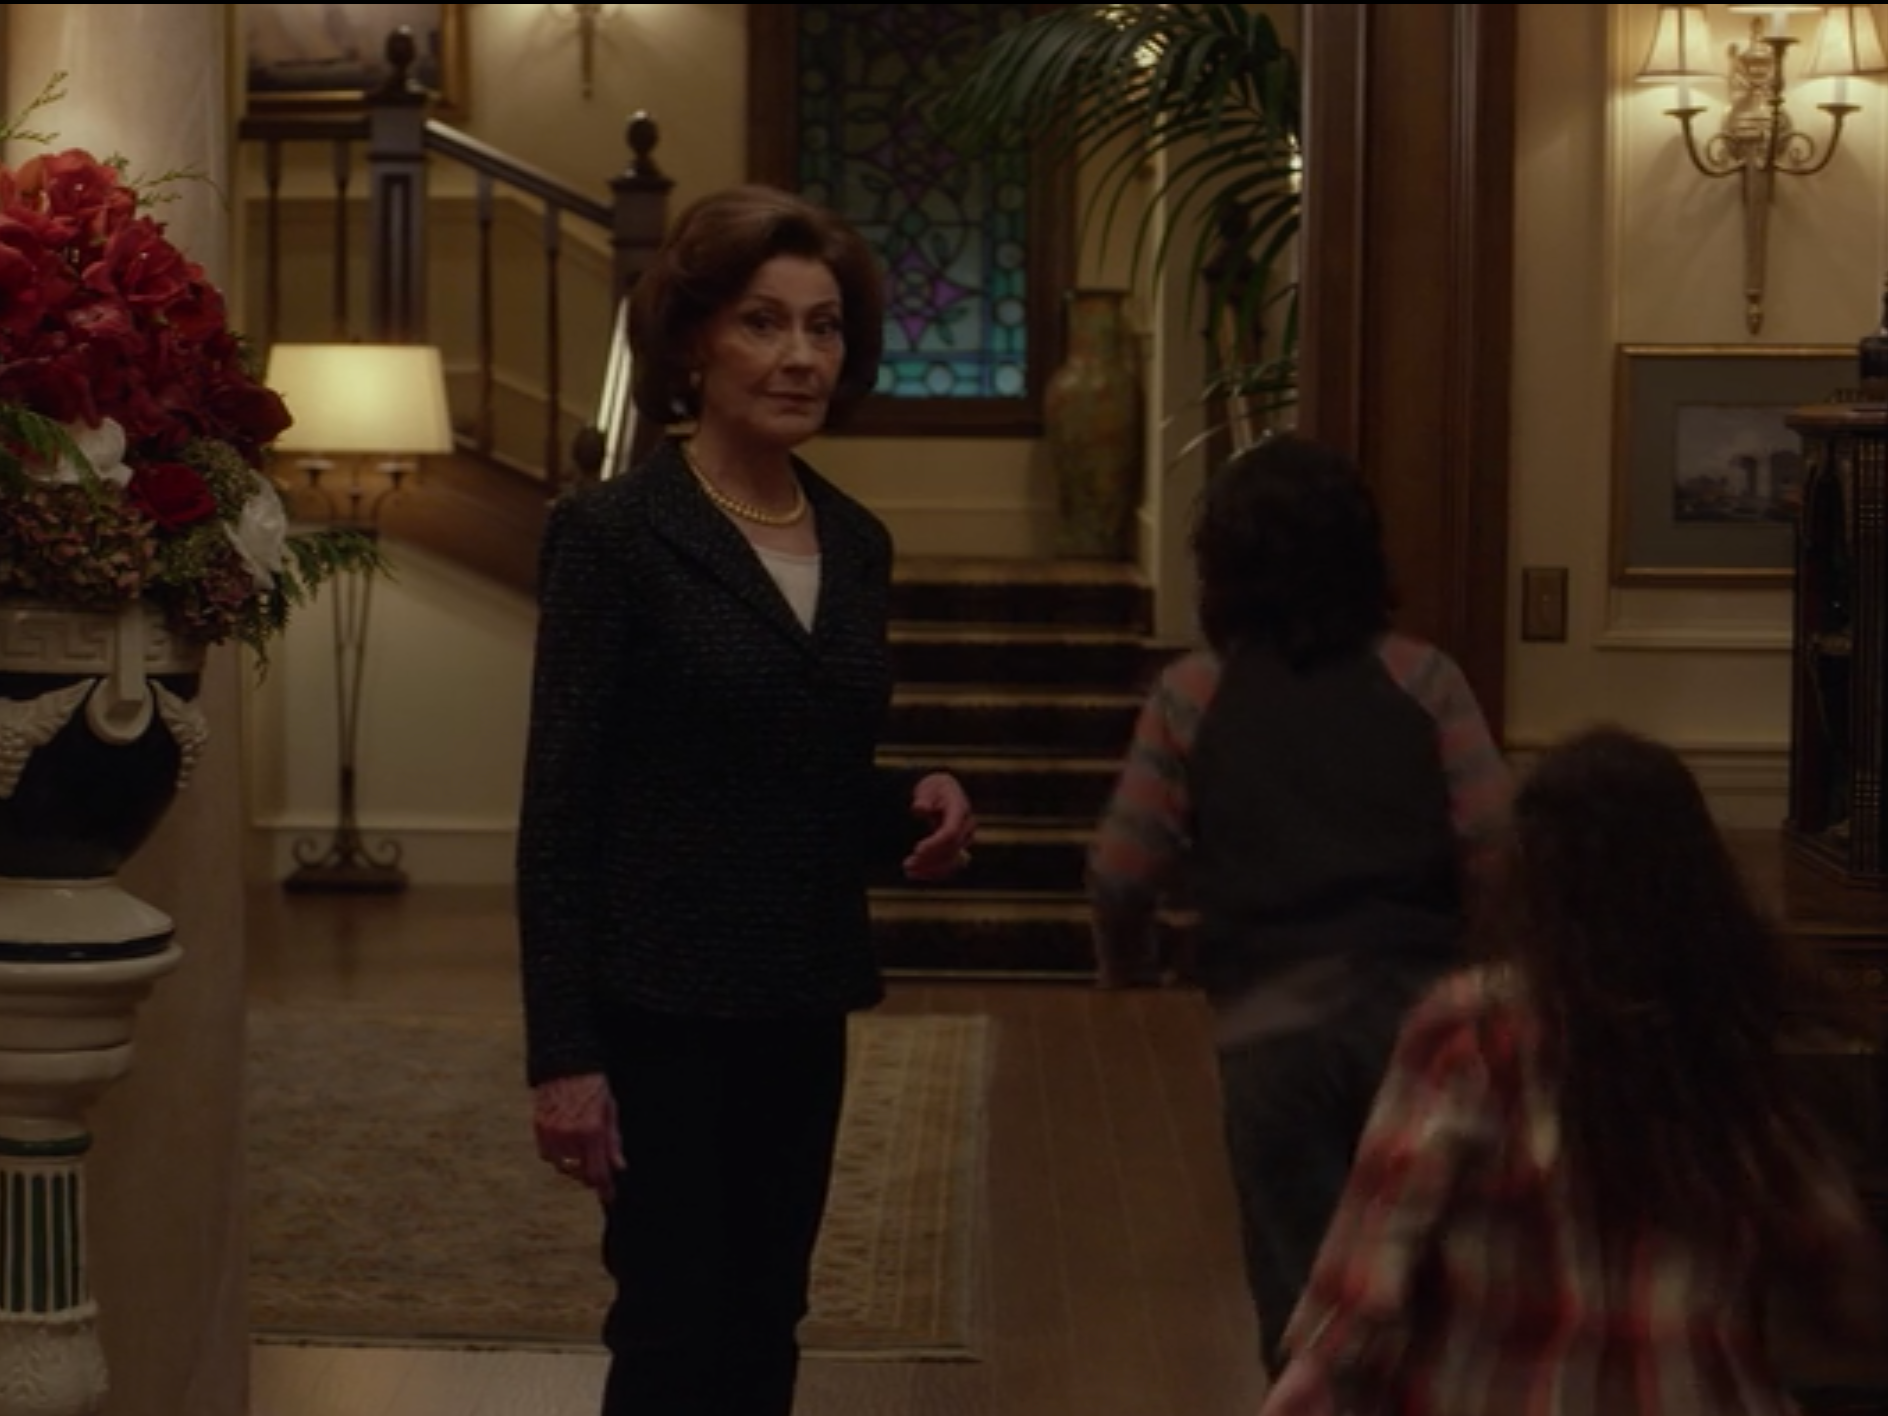 Emily welcomes her maid's family into her home, even though she doesn't know how to communicate with them.